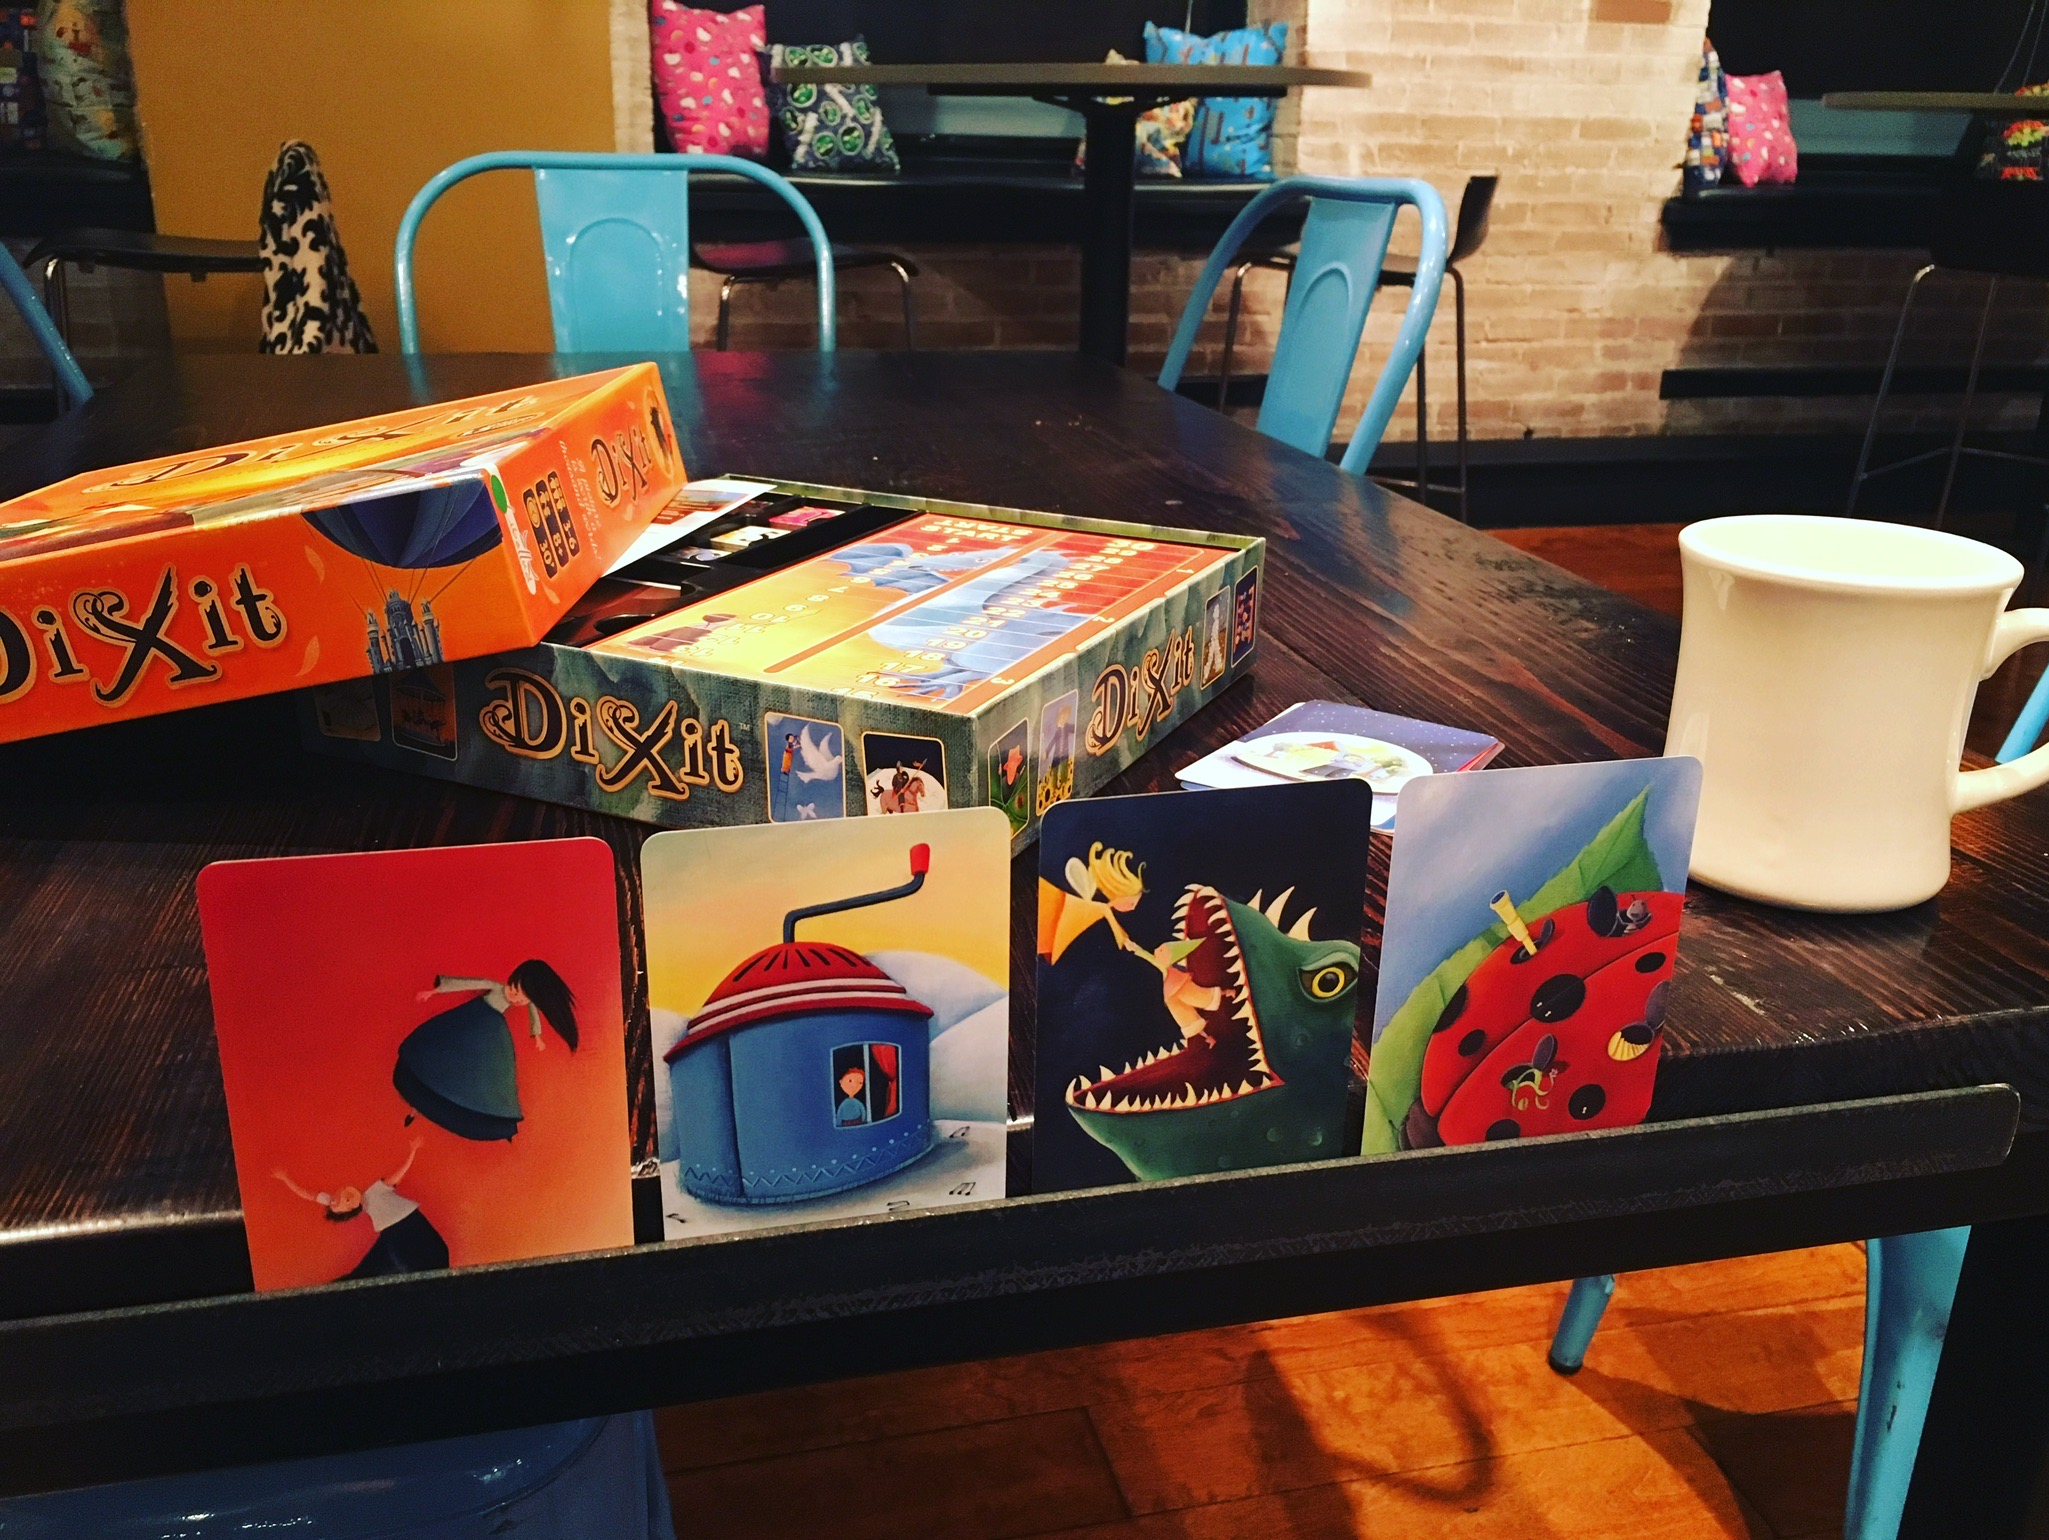 The Game of Dixit